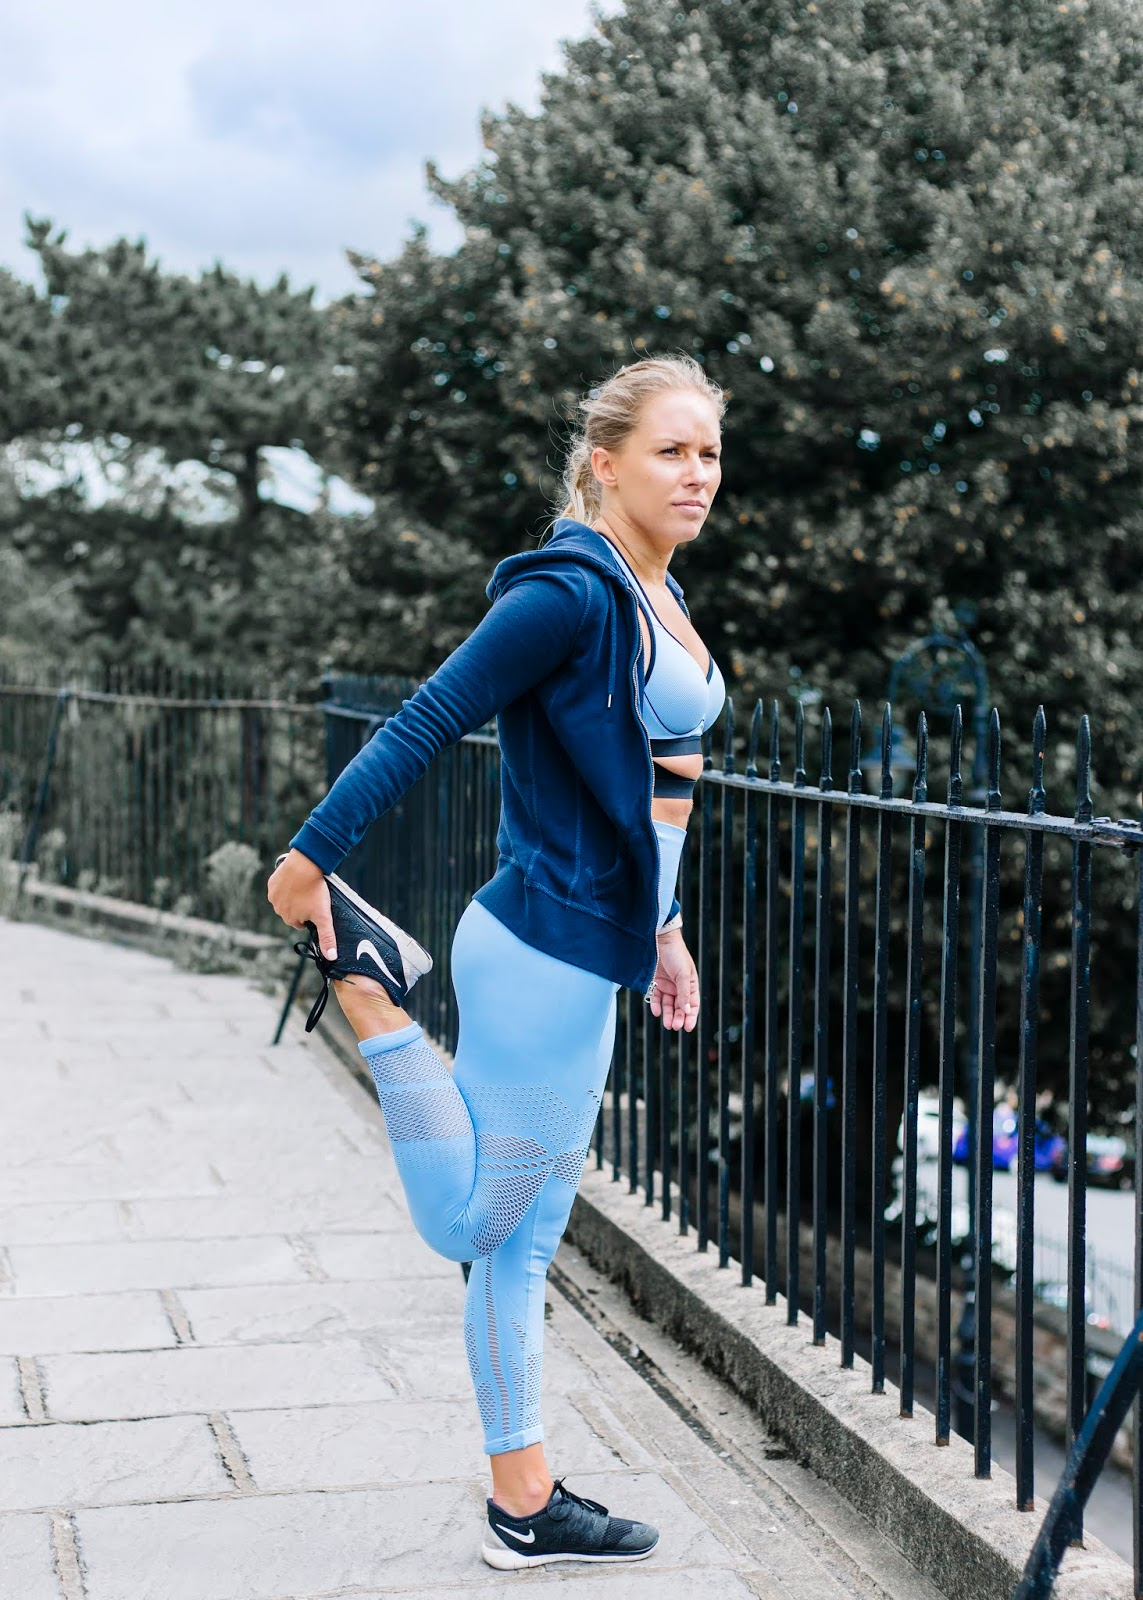 Fitness | Getting a Personal Trainer - Rachel Emily Blog